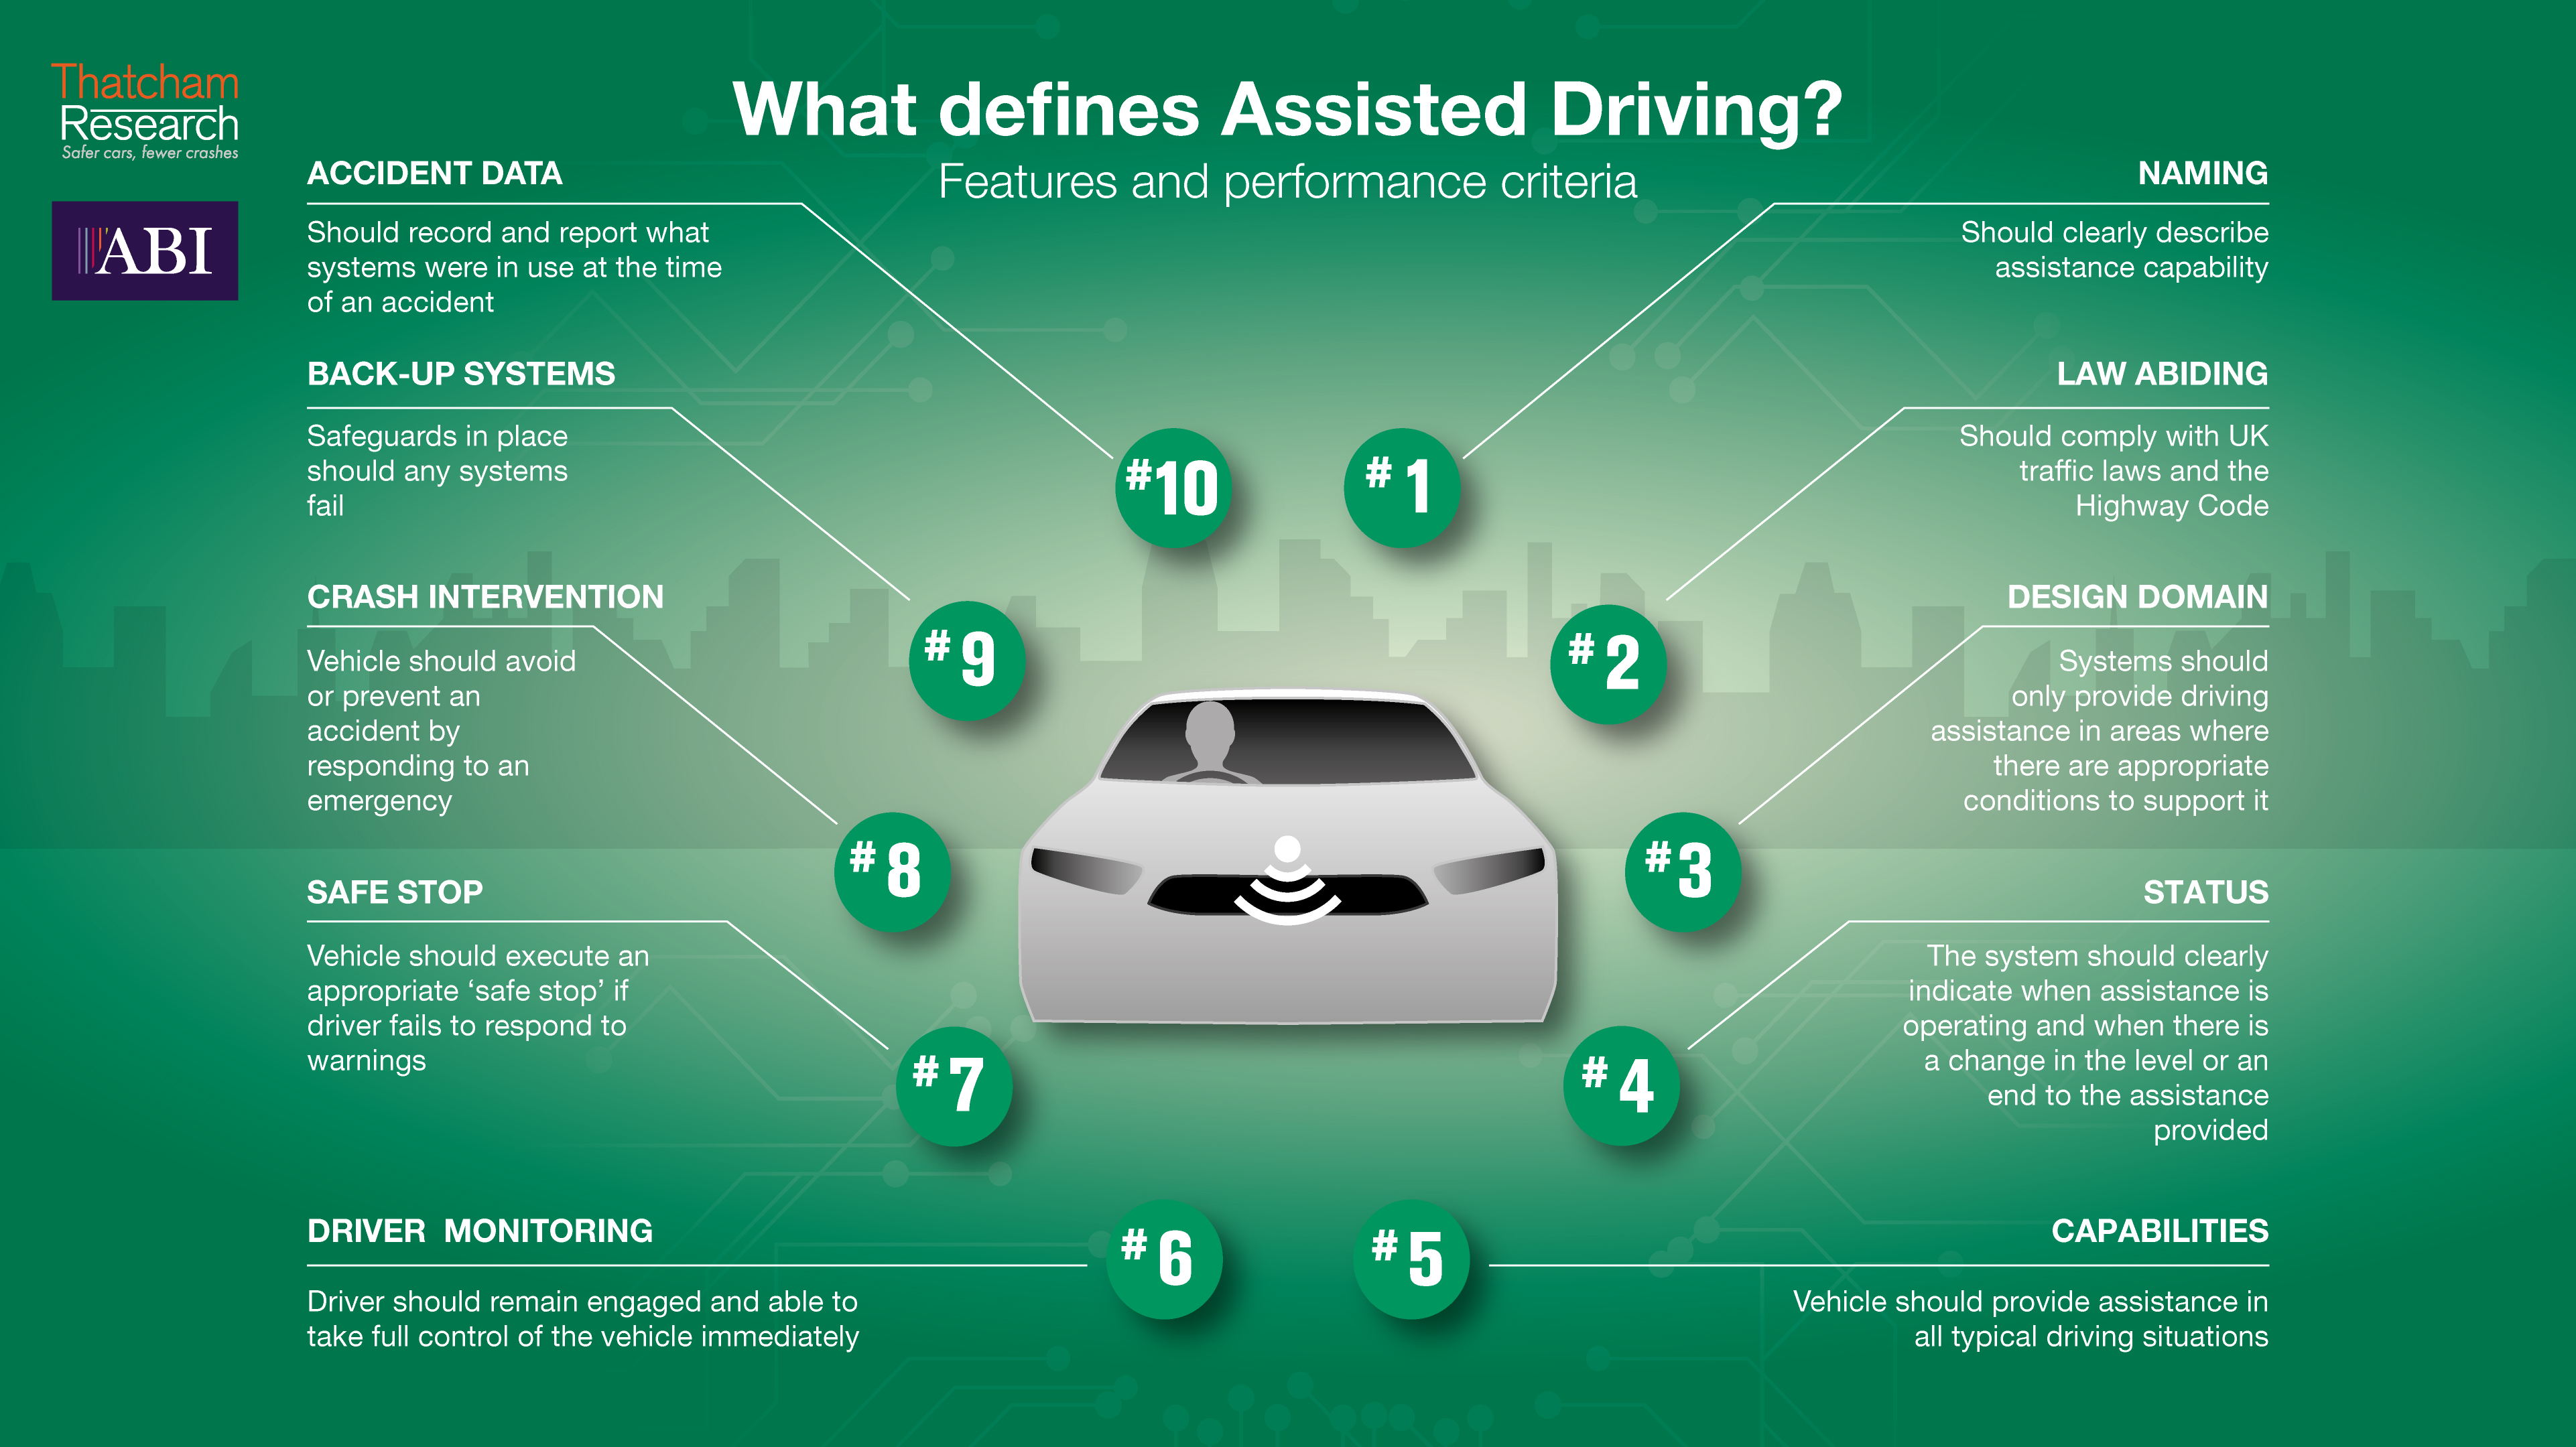 Features that define Assisted Driving